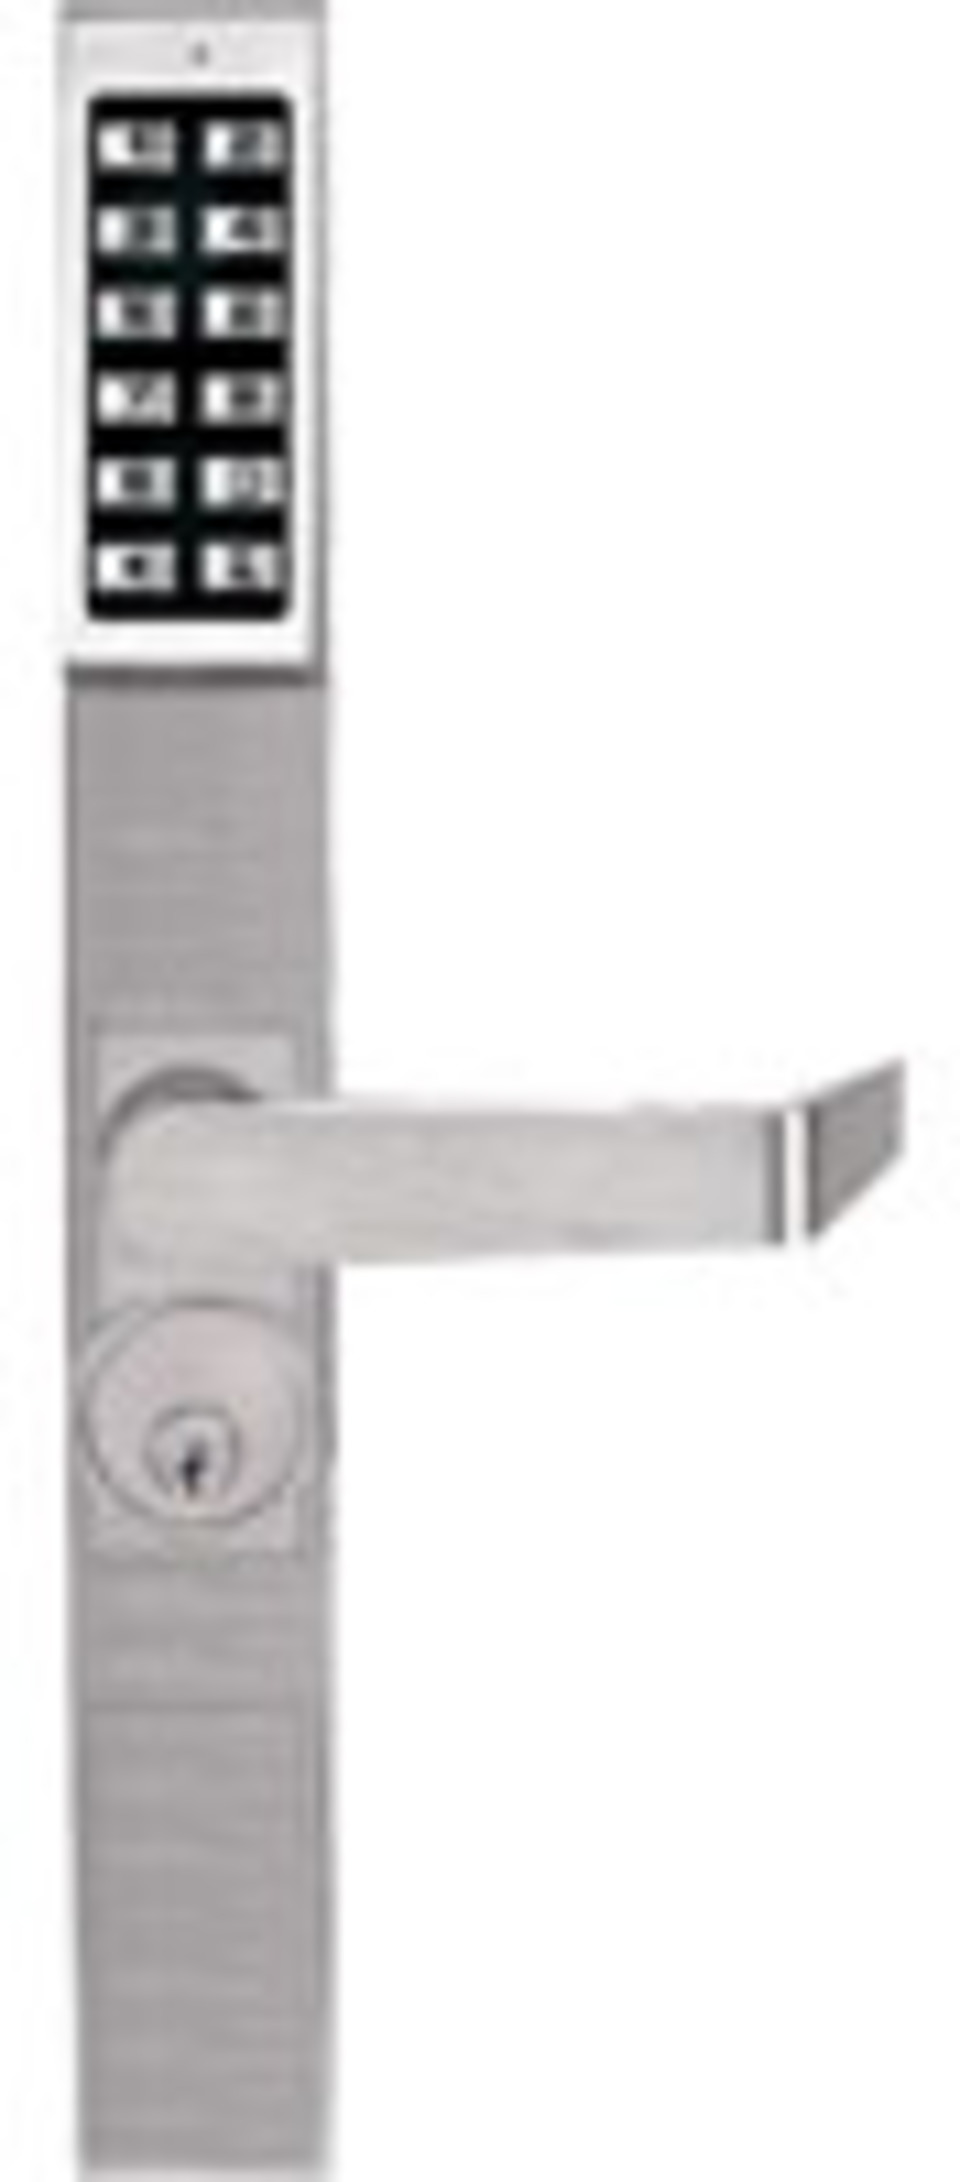 Controlling Access With Alarm Lock's Trilogy Narrow Stile Locks